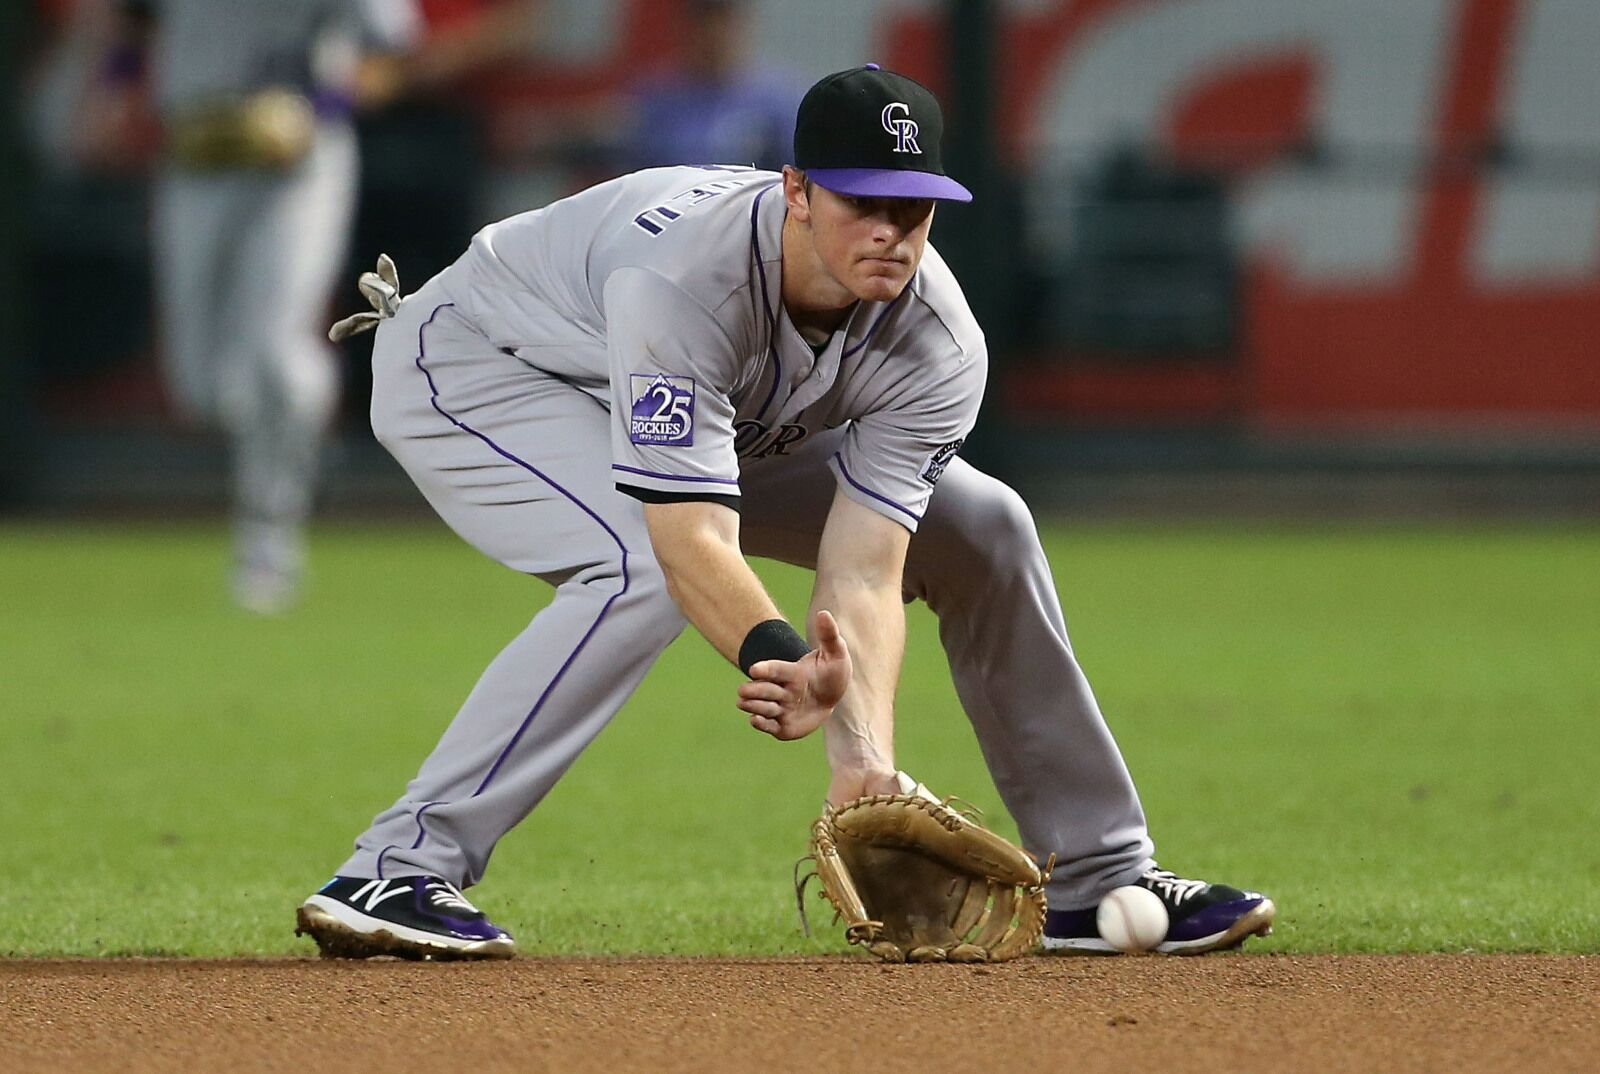 PHOENIX, AZ - SEPTEMBER 22: Second baseman DJ LeMahieu #9 of the Colorado Rockies fields a ground ball against the Arizona Diamondbacks during the first inning of an MLB game at Chase Field on September 22, 2018 in Phoenix, Arizona. (Photo by Ralph Freso/Getty Images)